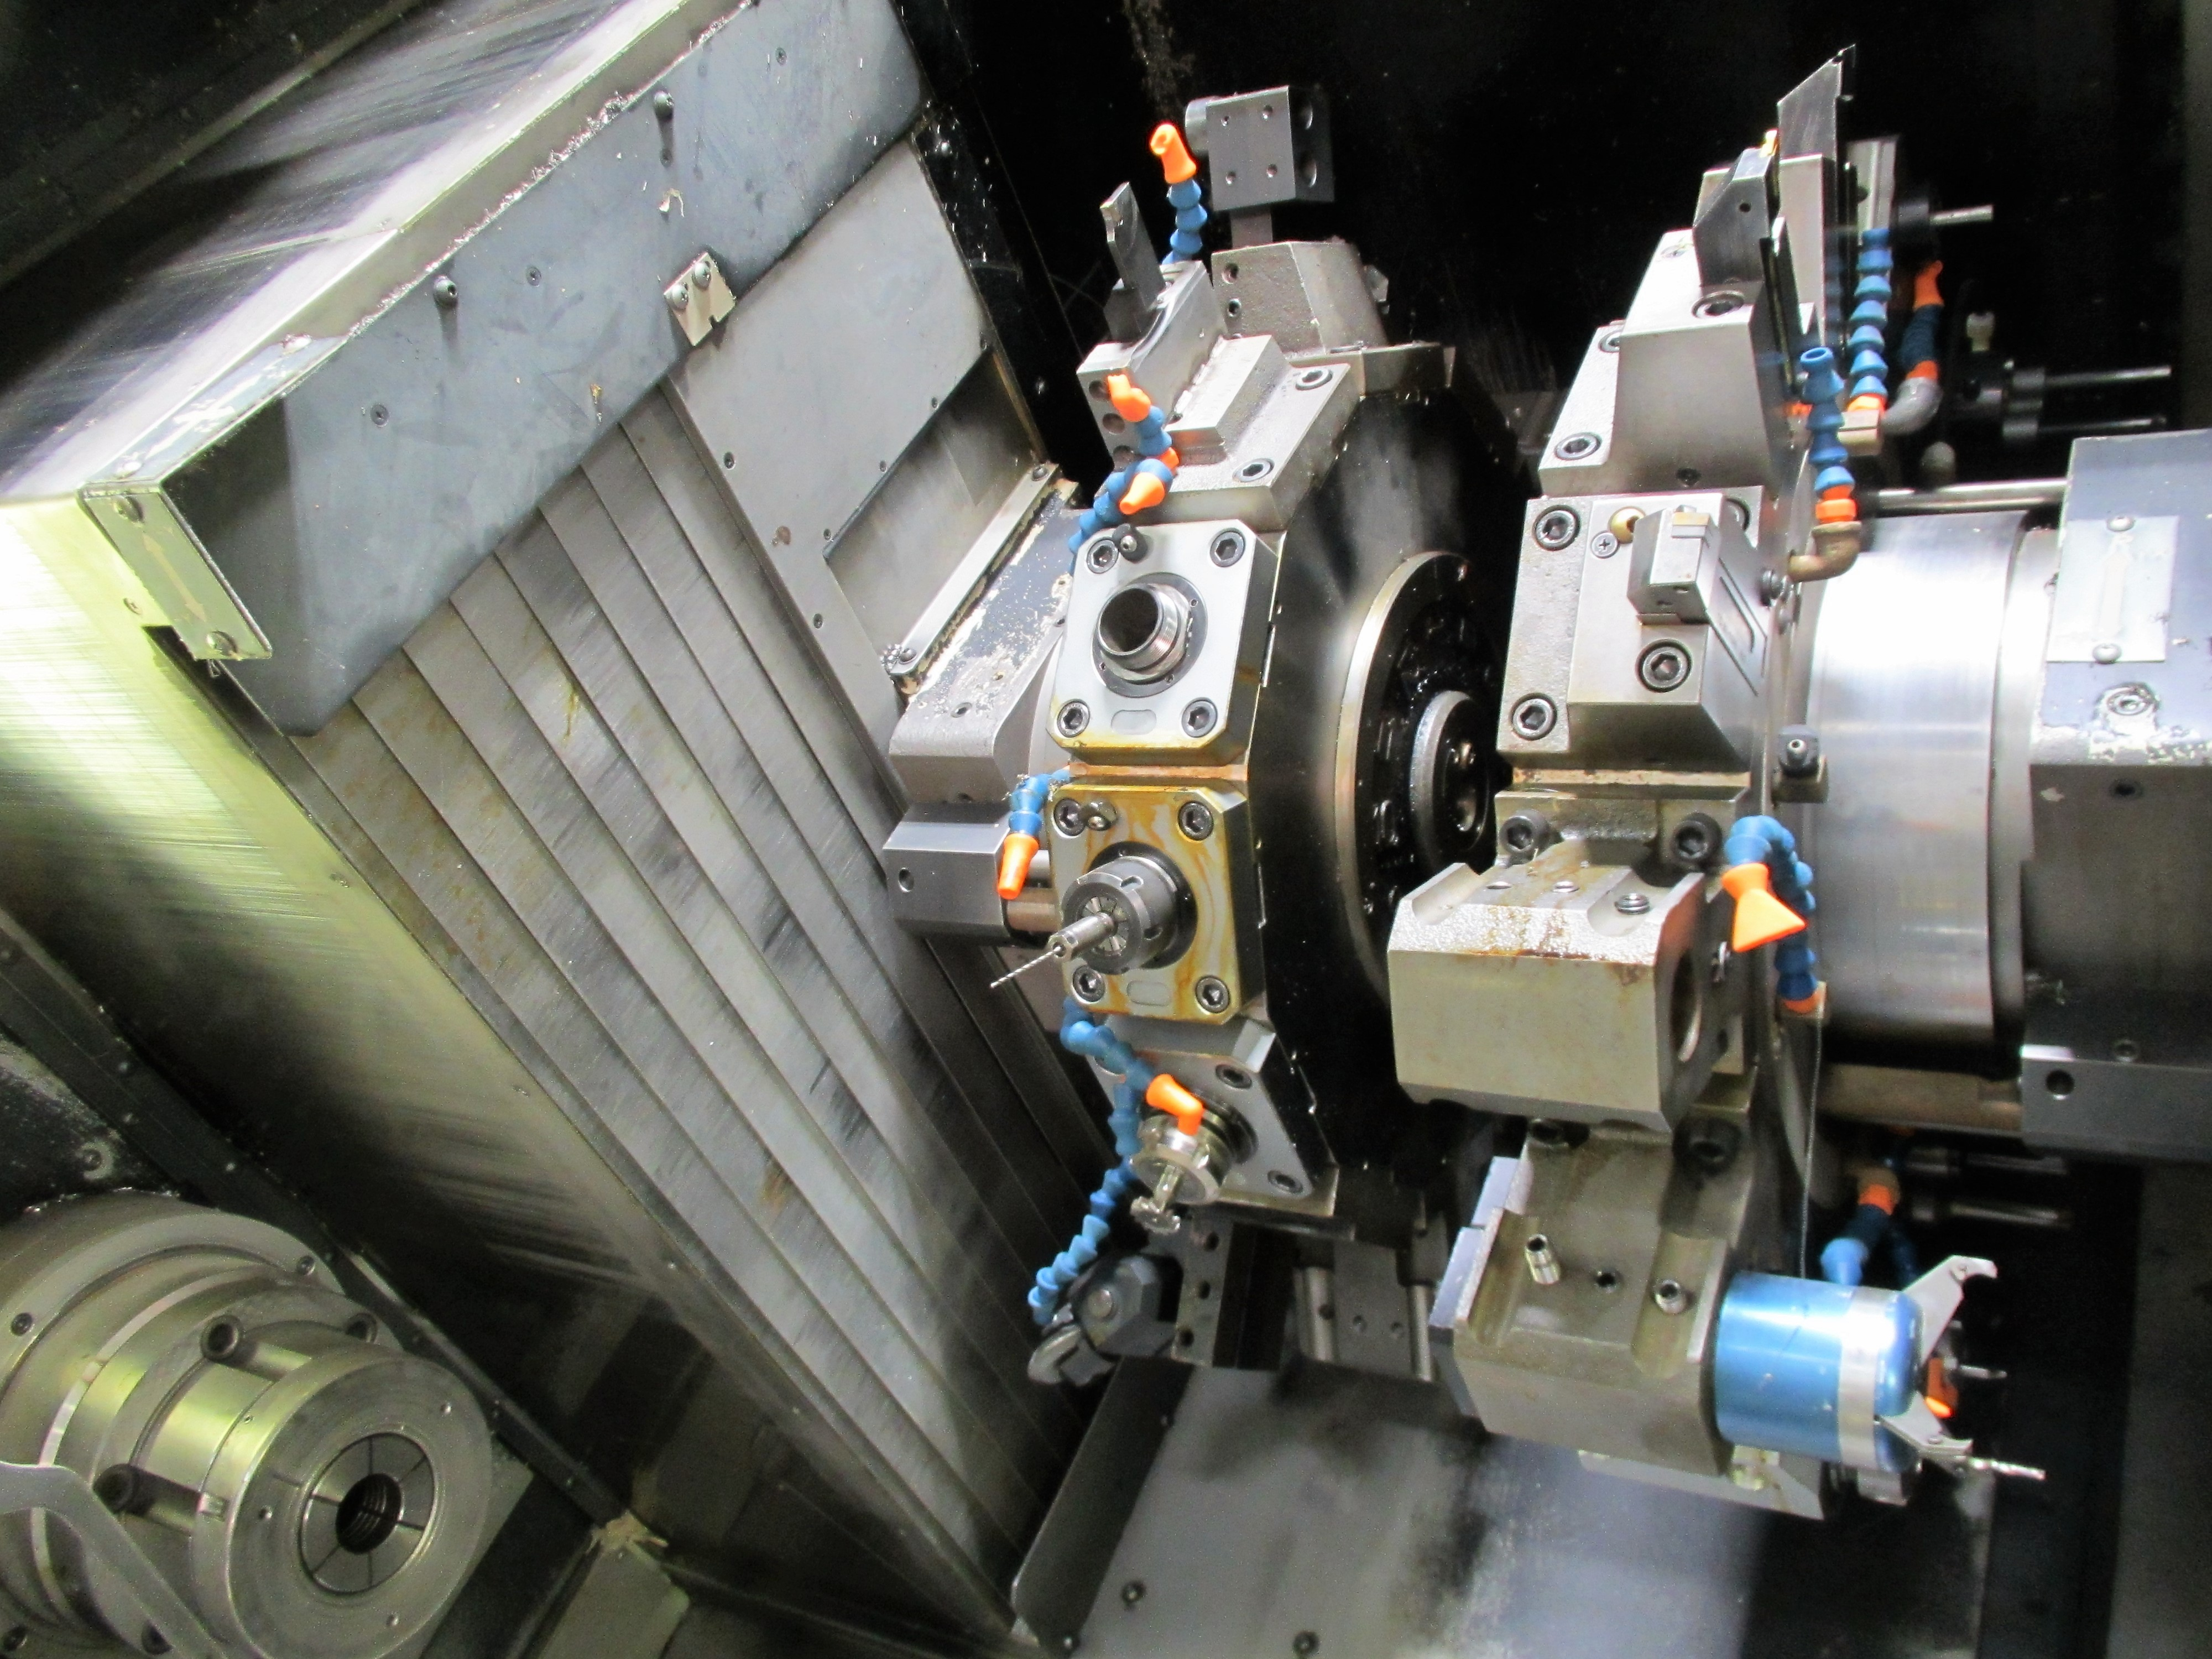 NAKAMURA TOME TW-30MM 7-AXIS CNC TWIN SPINDLE TURNING CENTER - Image 8 of 21